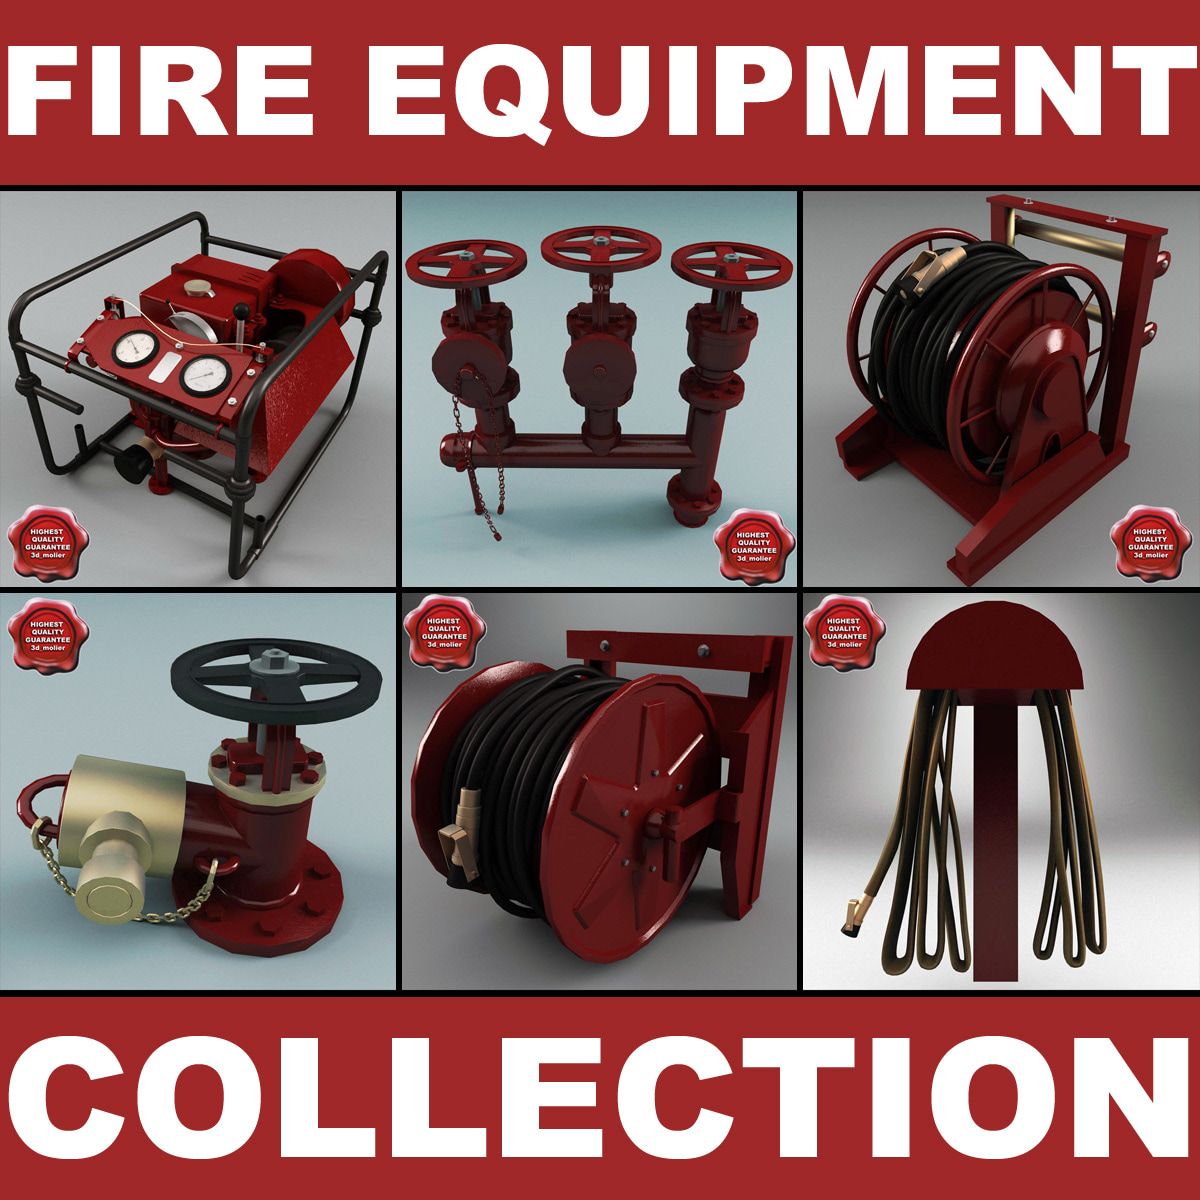 Ship_Fire_Equipment_Collection_V2_00.jpg